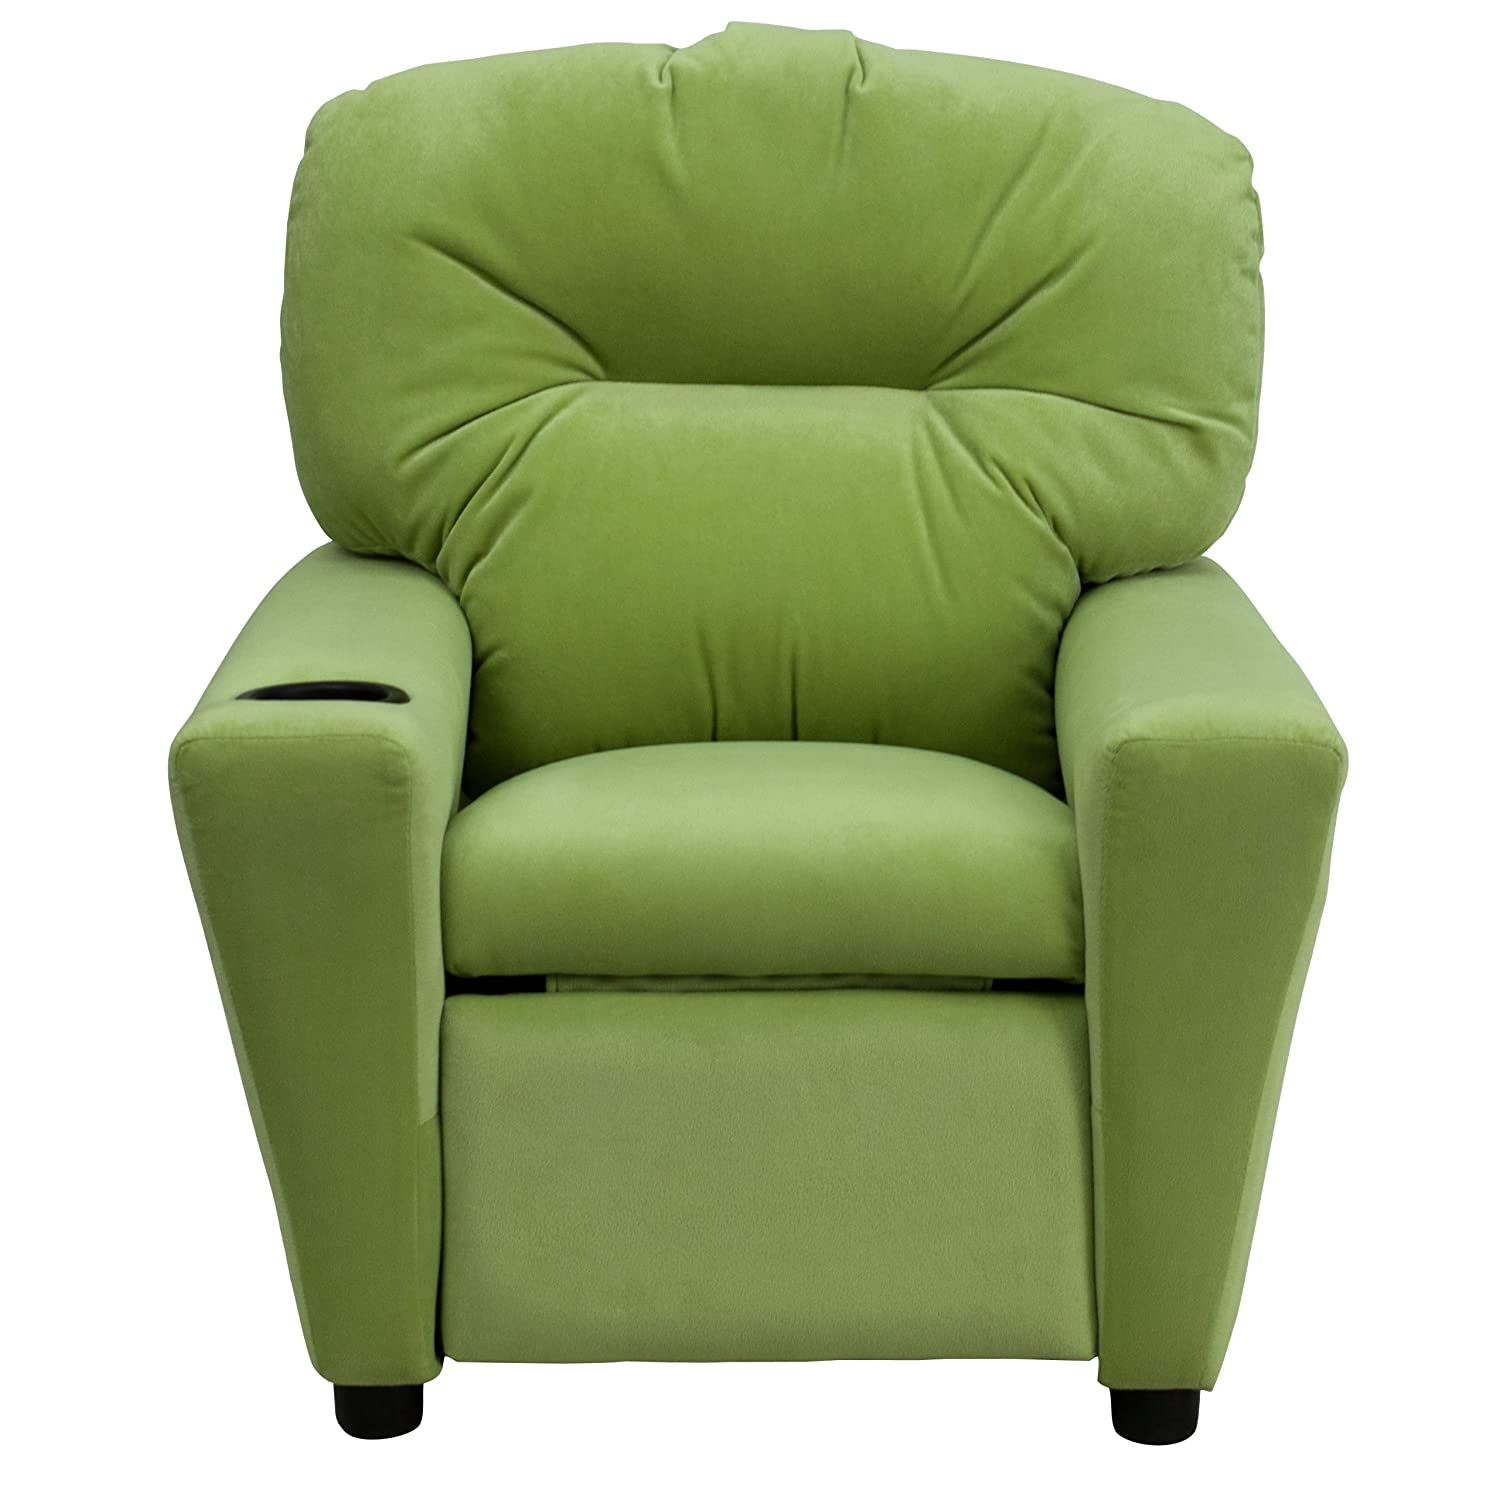 Amazon.com: Flash Furniture Contemporary Avocado Microfiber Kids Recliner  With Cup Holder: Kitchen U0026 Dining